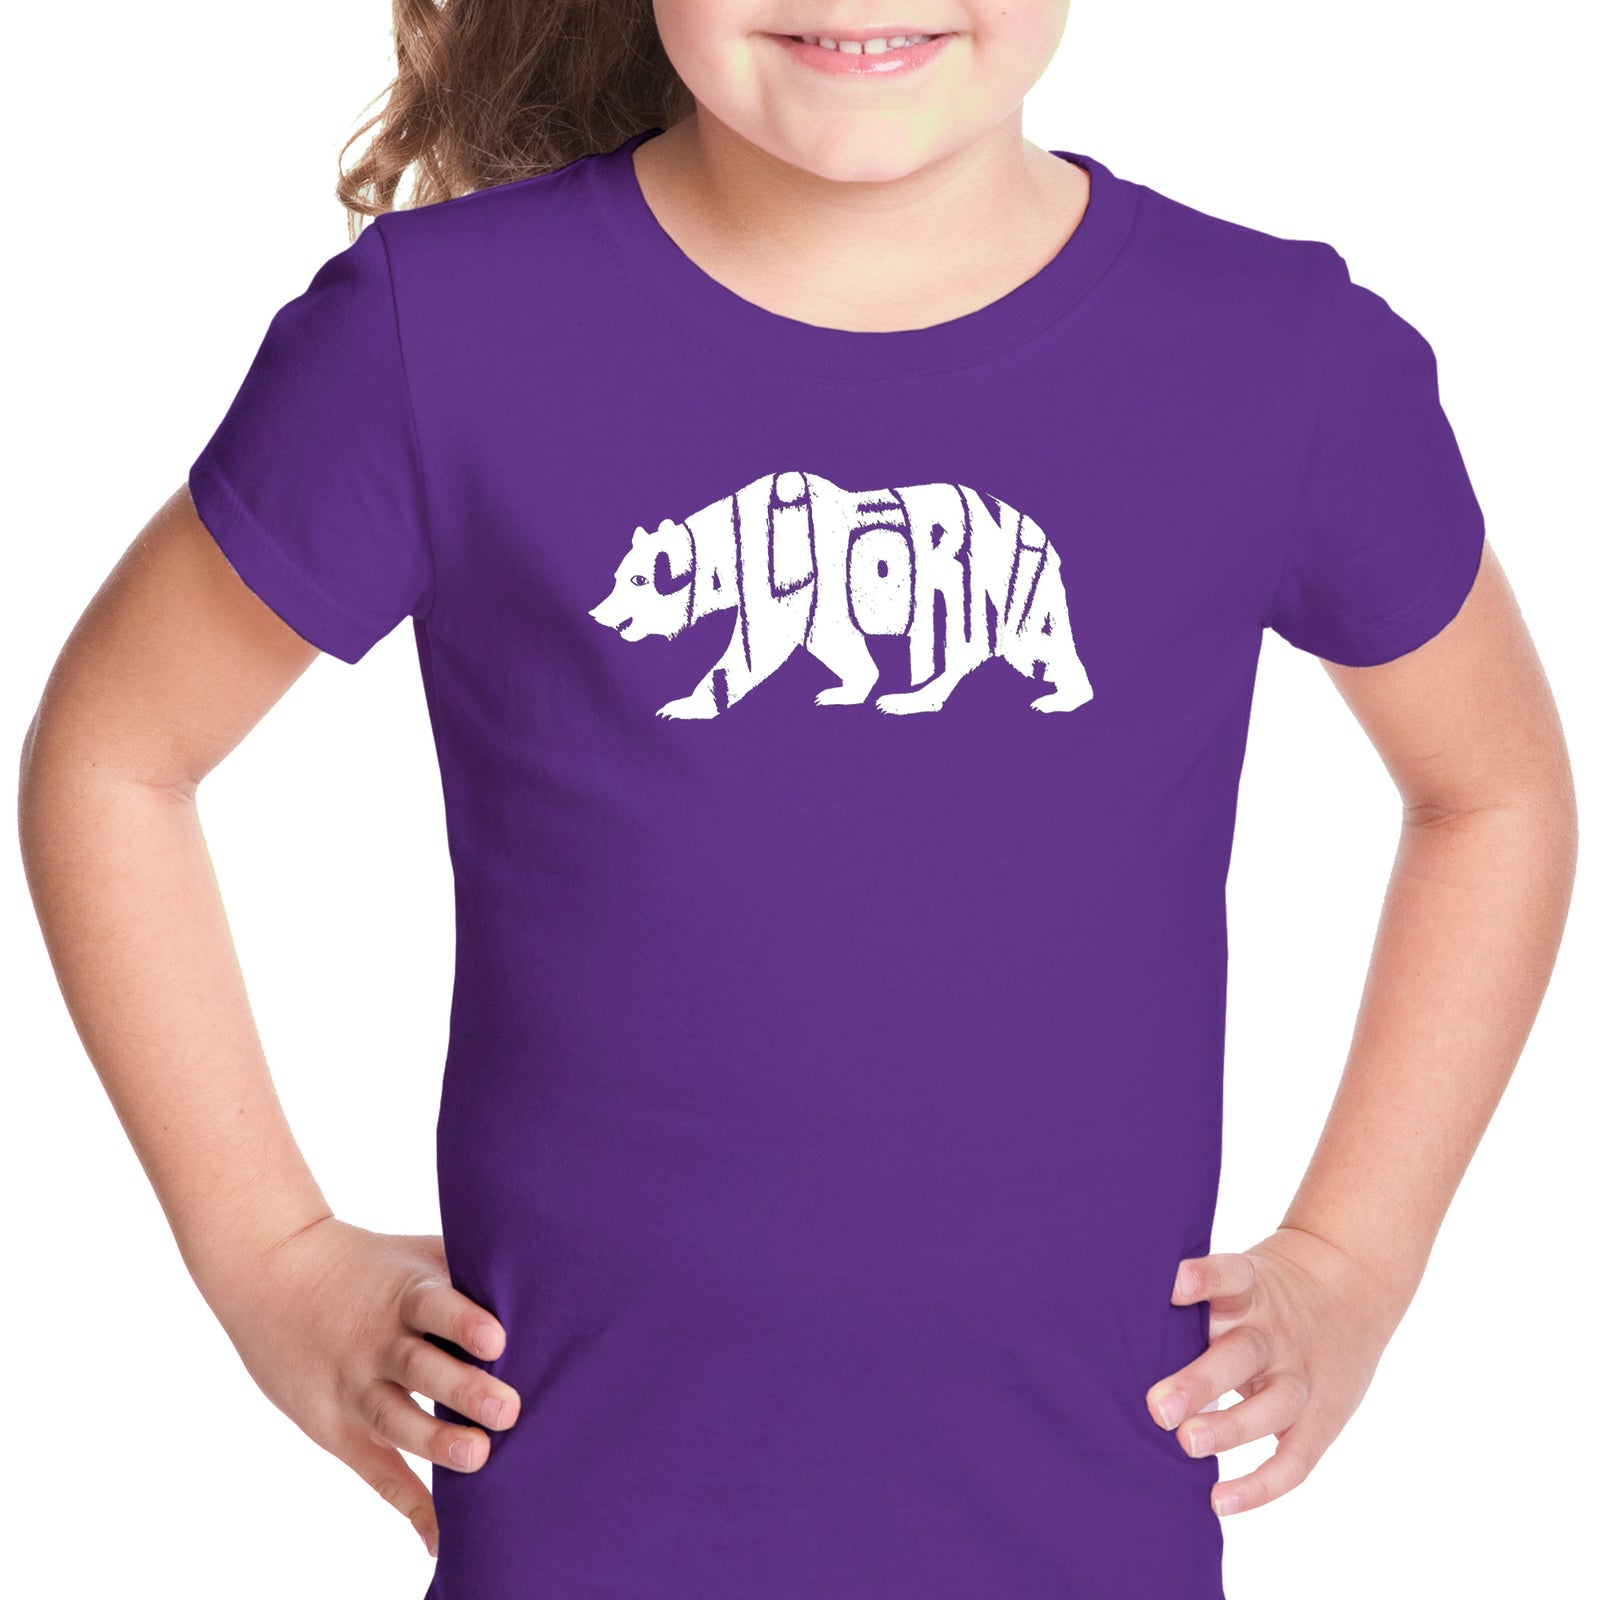 Girl's Word Art T-shirt - California Bear